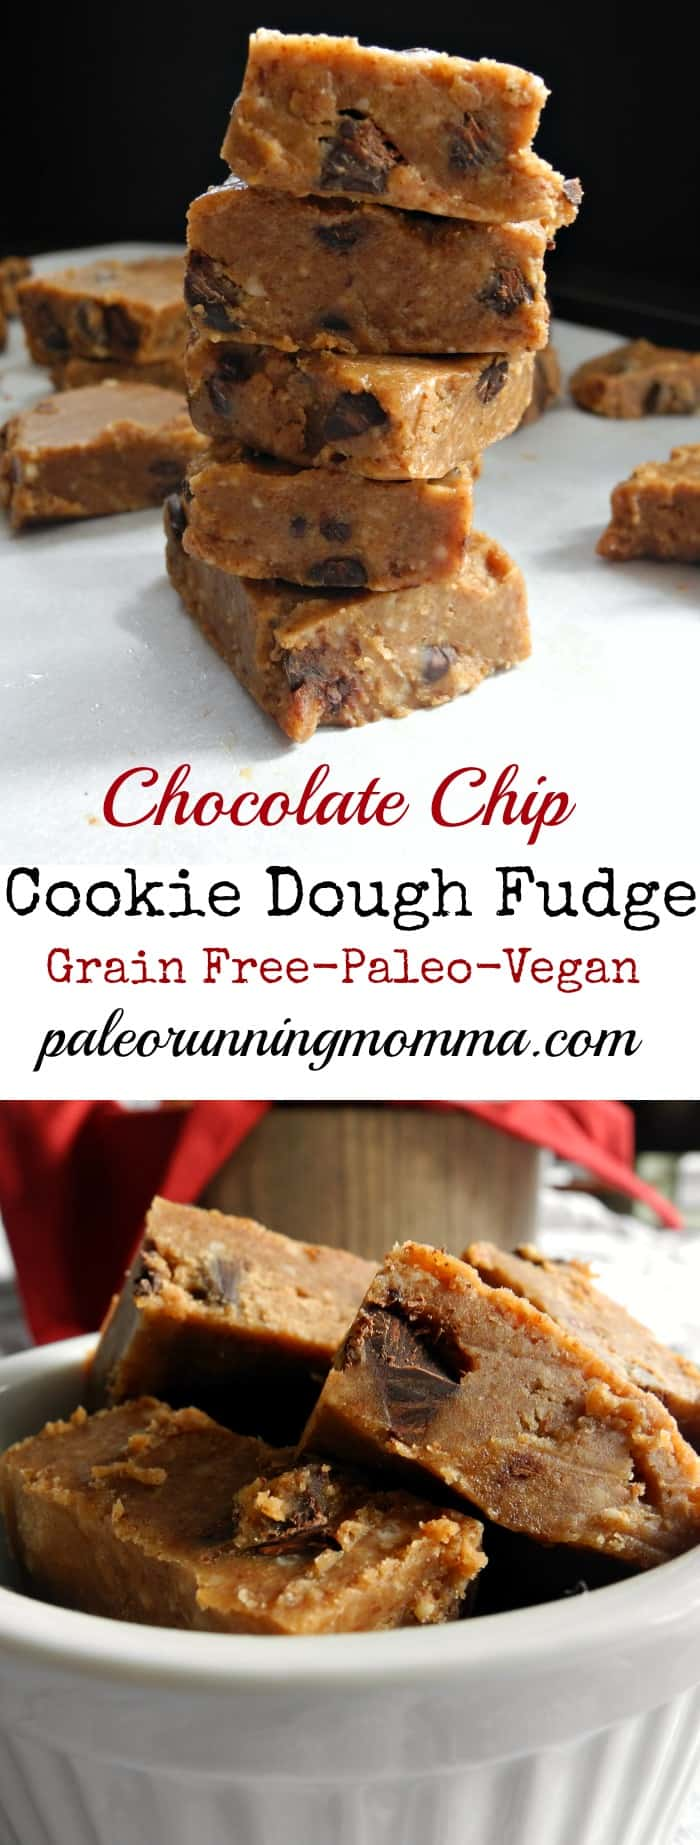 Chocolate Chip Cookie Dough Fudge #glutenfree #grainfree #vegan #paleo